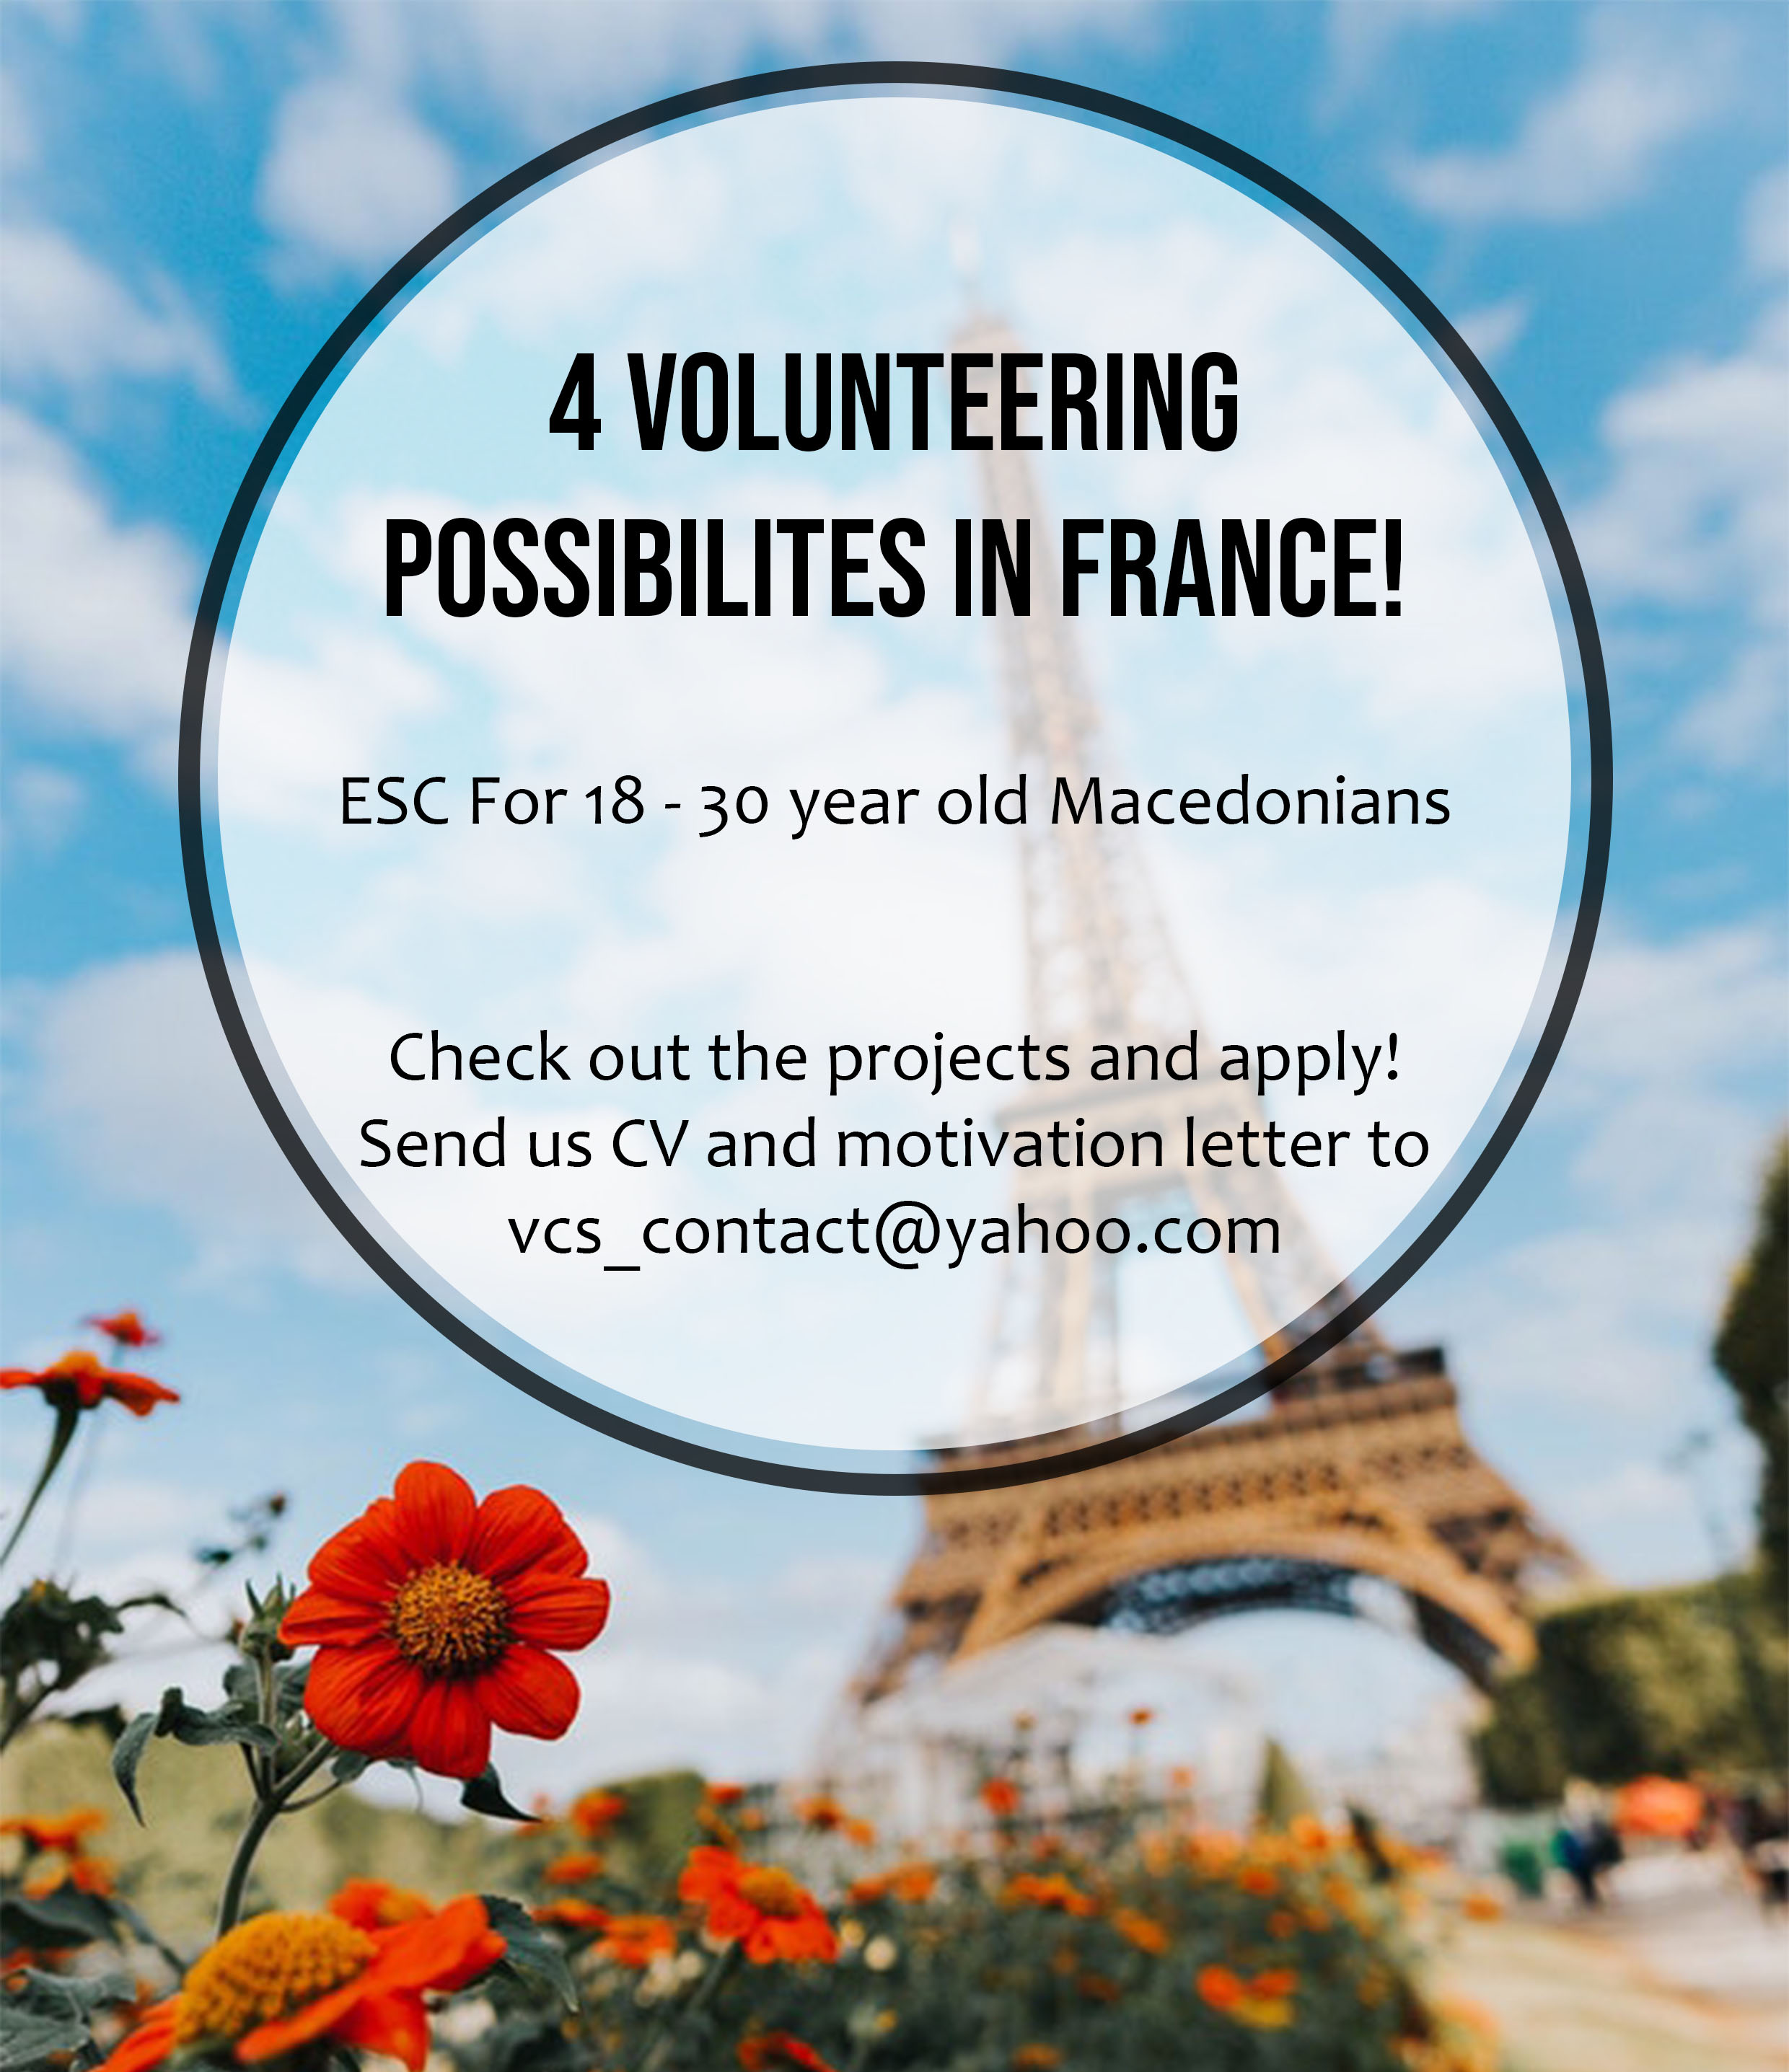 4 volunteering projects in France!